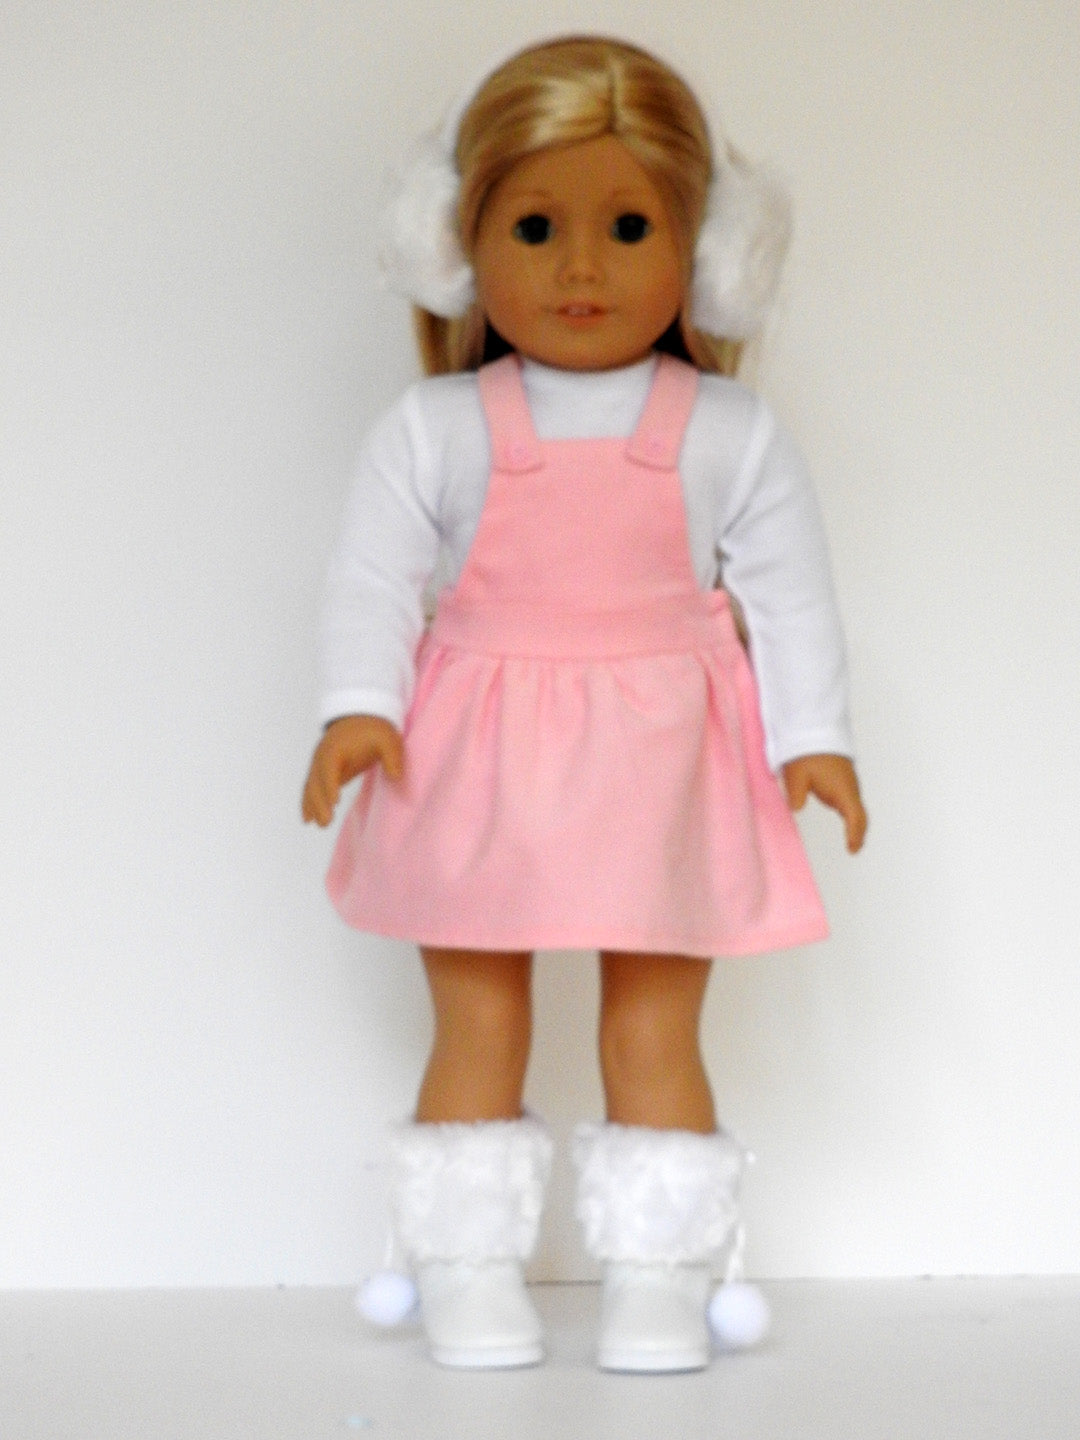 18 Inch Doll Trendy Overall Dress, T-Shirt, Boots, Earmuffs for American Girl Do